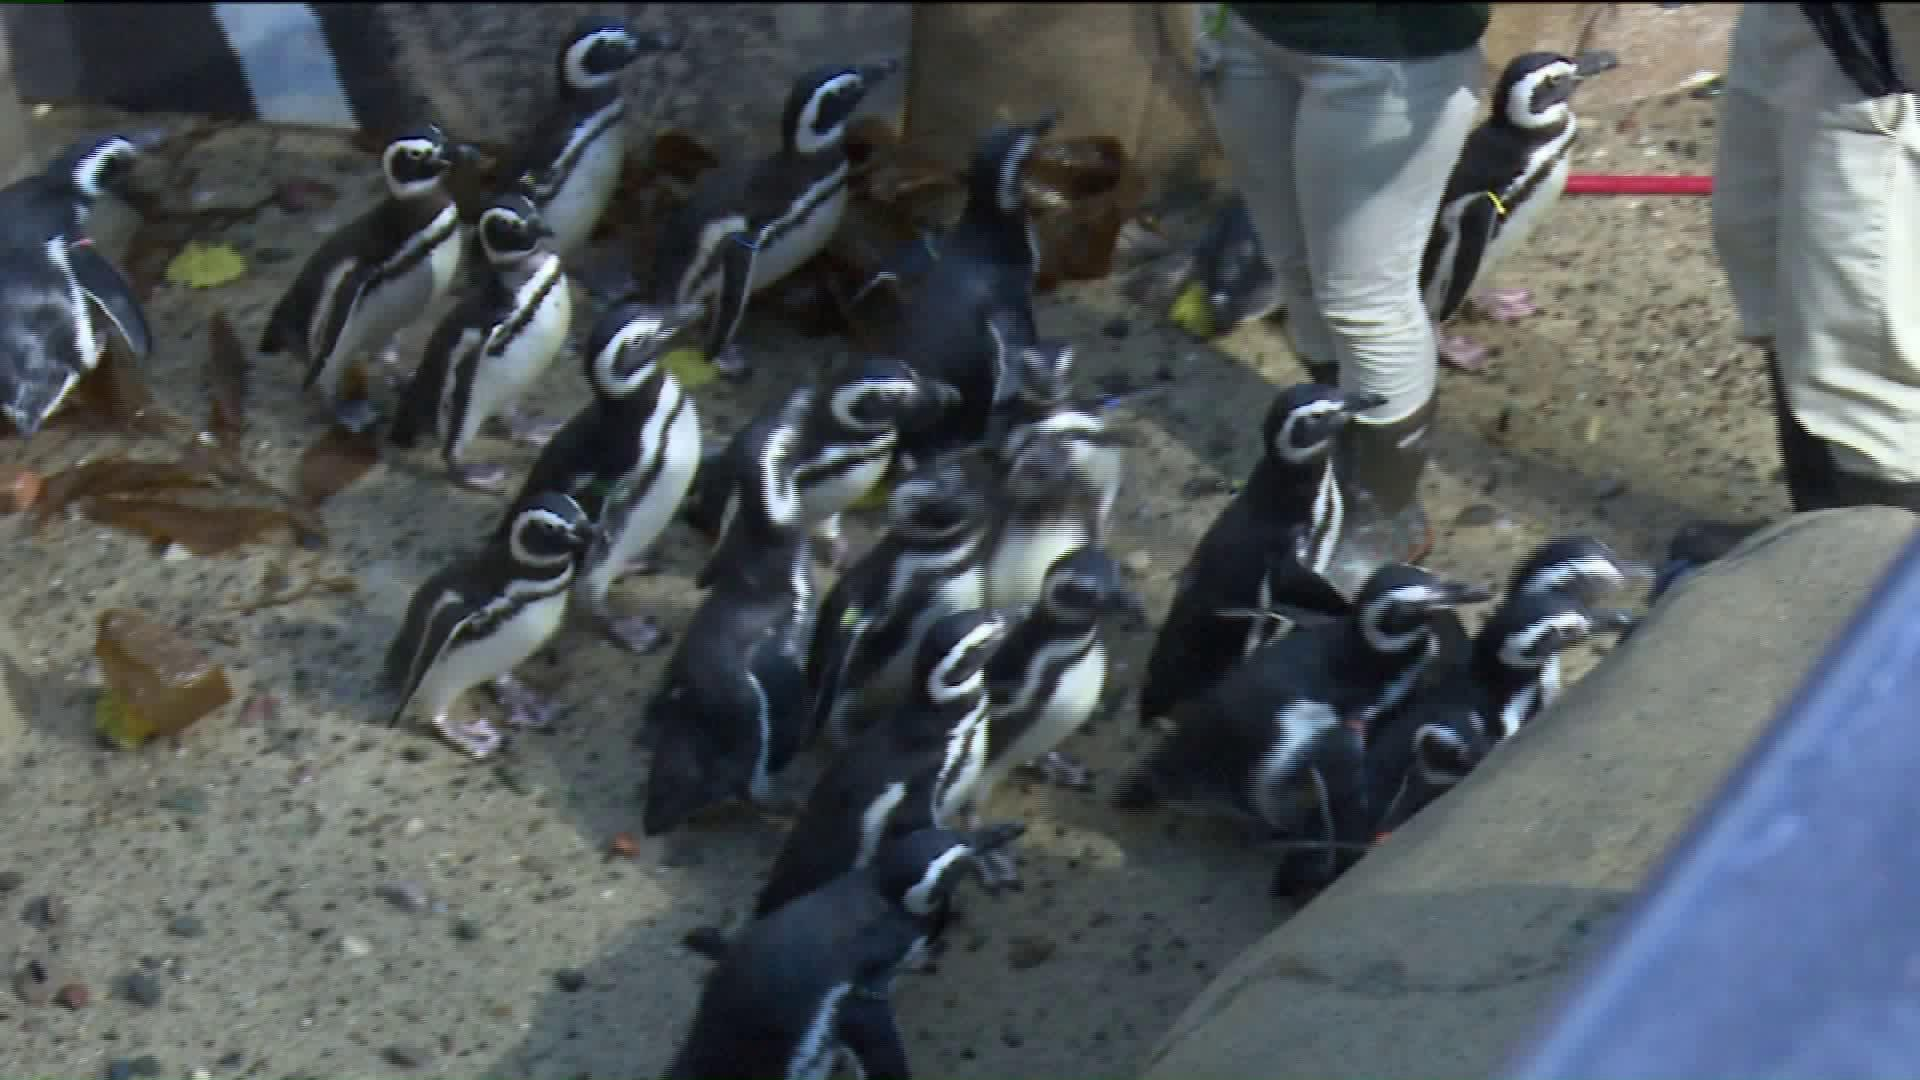 Penguins at Michigan Zoo Get Their Annual Check-Up